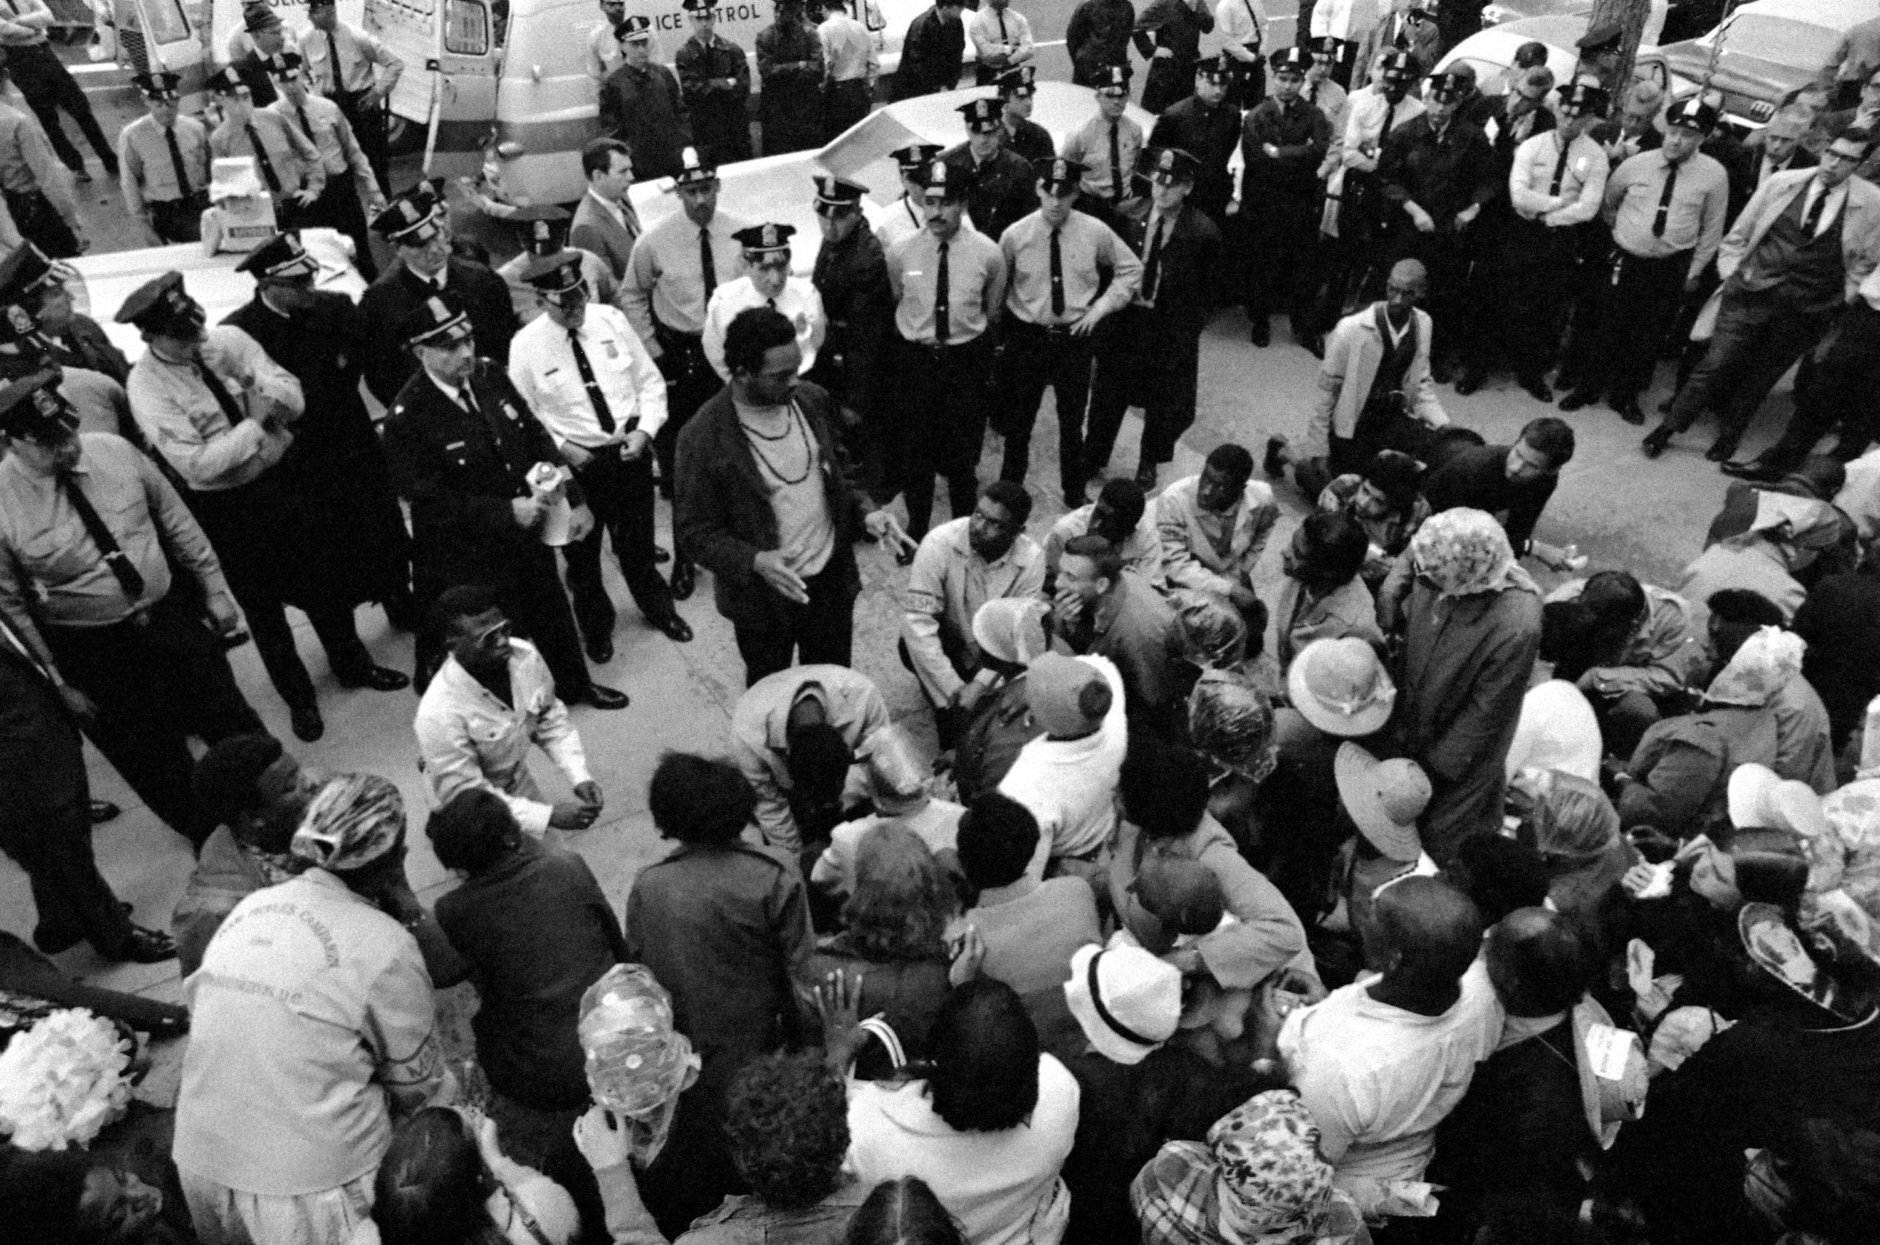 With police standing by, the Rev. Jesse Jackson talks to Poor People's Campaign demonstrators outside of the Capitol in Washington, May 23, 1968. After the arrest of approximately 20 of the demonstrators, Jackson who is Resurrection City manager, told his followers to leave and meet with him inside the Rayburn House Office Building. Jackson said he had a permit for the meeting. (AP Photo/Bob Daugherty)